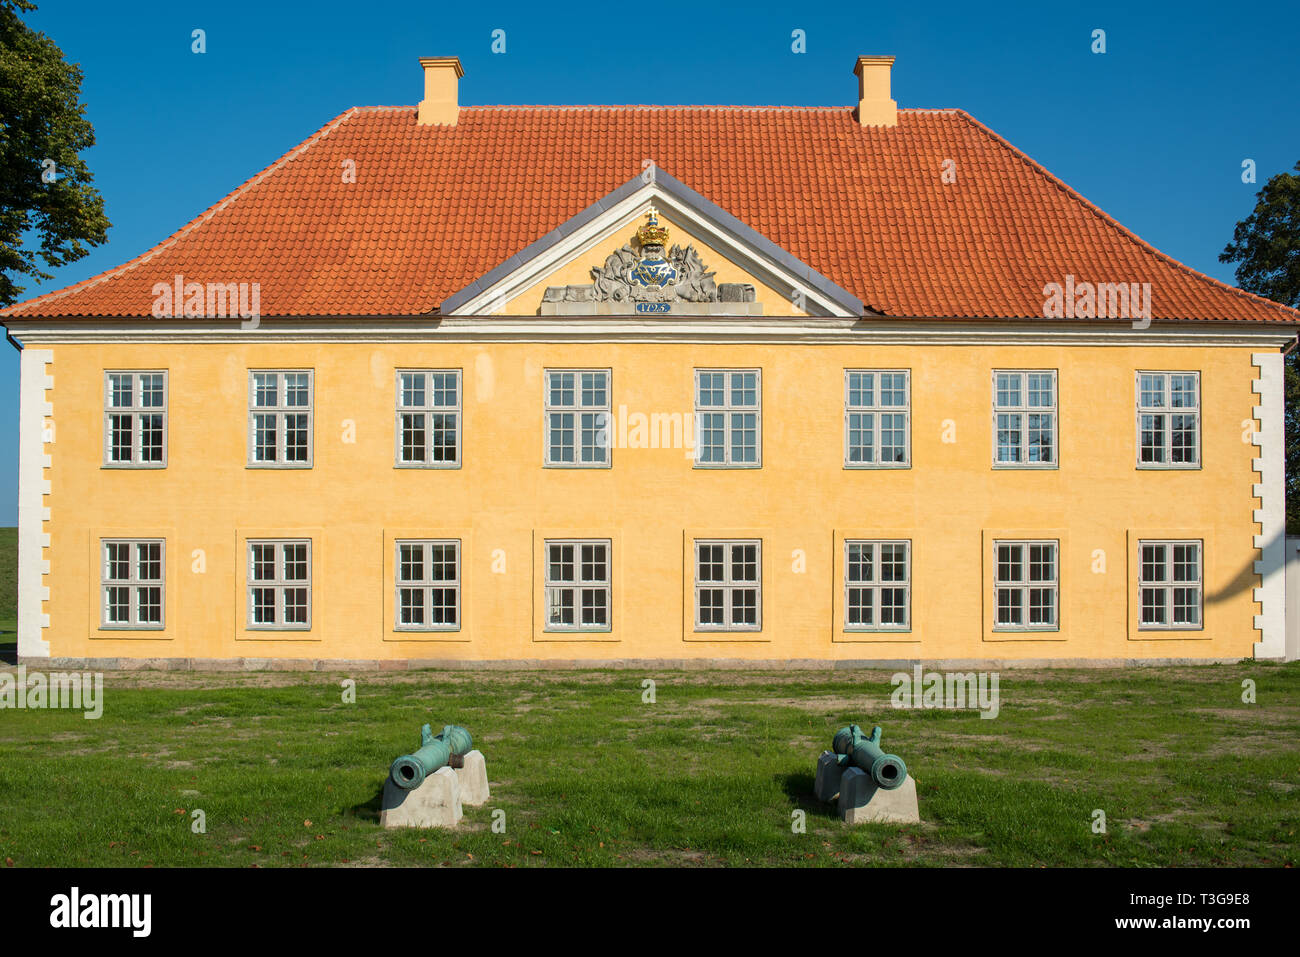 The colourful Commander's House in Kastellet, Copenhagen with its yellow-dressed masonry, white detailing, red tiled roof and decorated pediment. - Stock Image